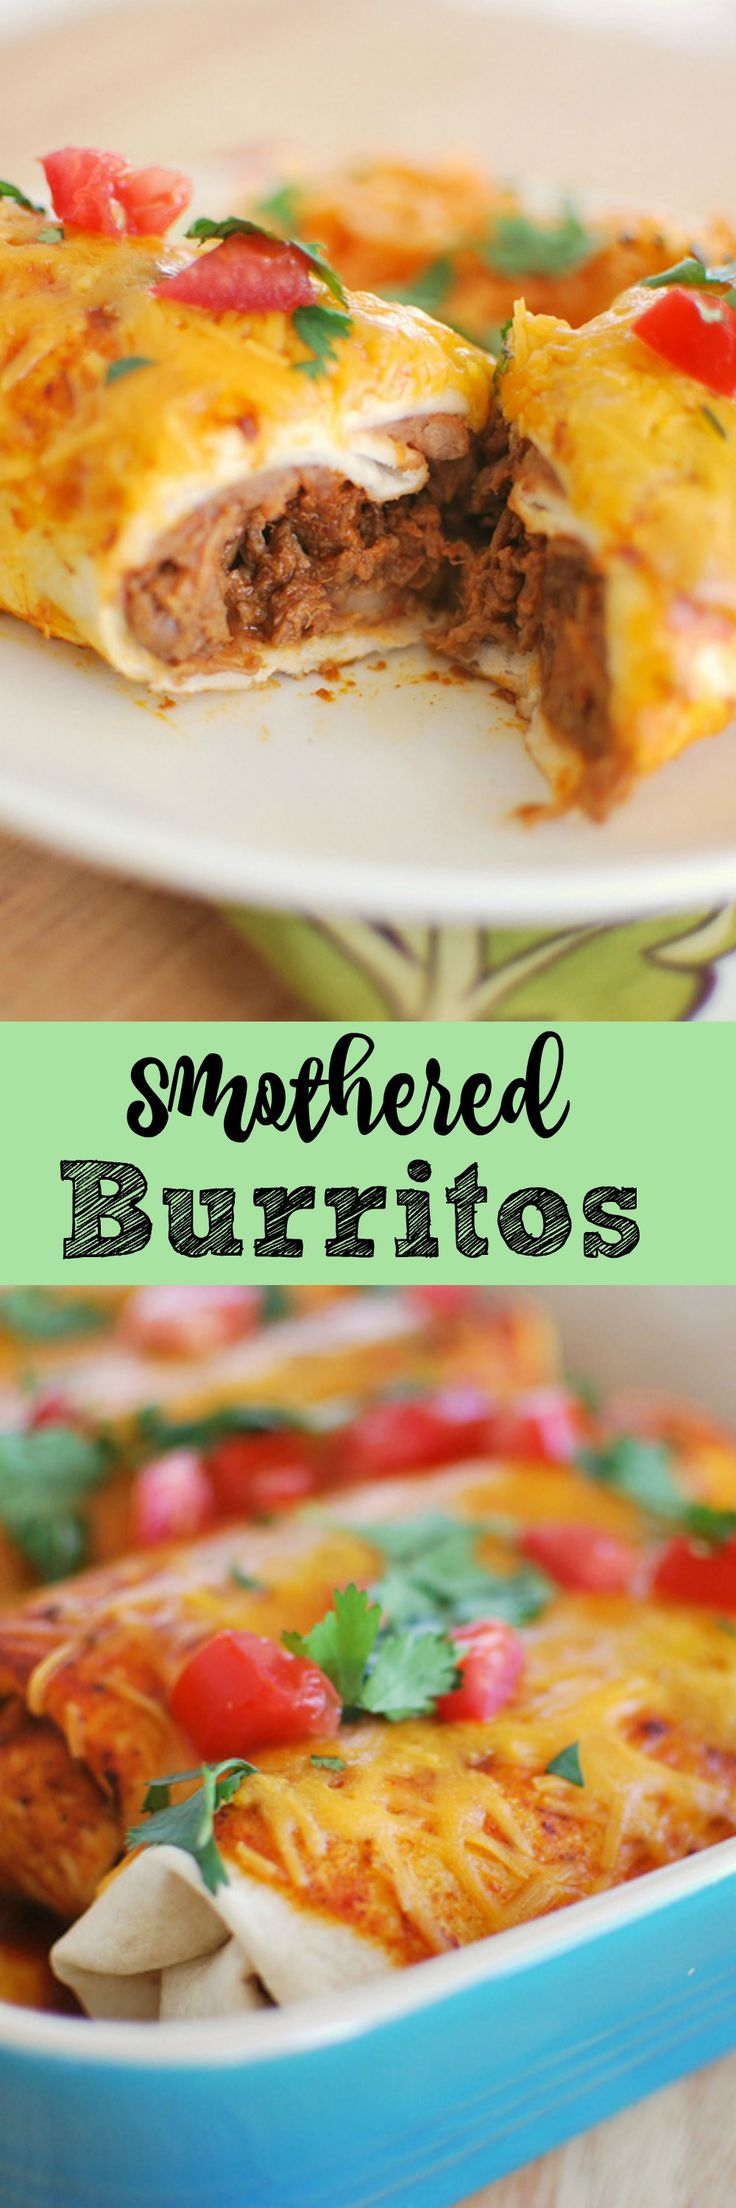 Smothered Burritos - beef cooked in the crockpot, wrapped in tortillas, and covered in sauce and cheese! So delicious!